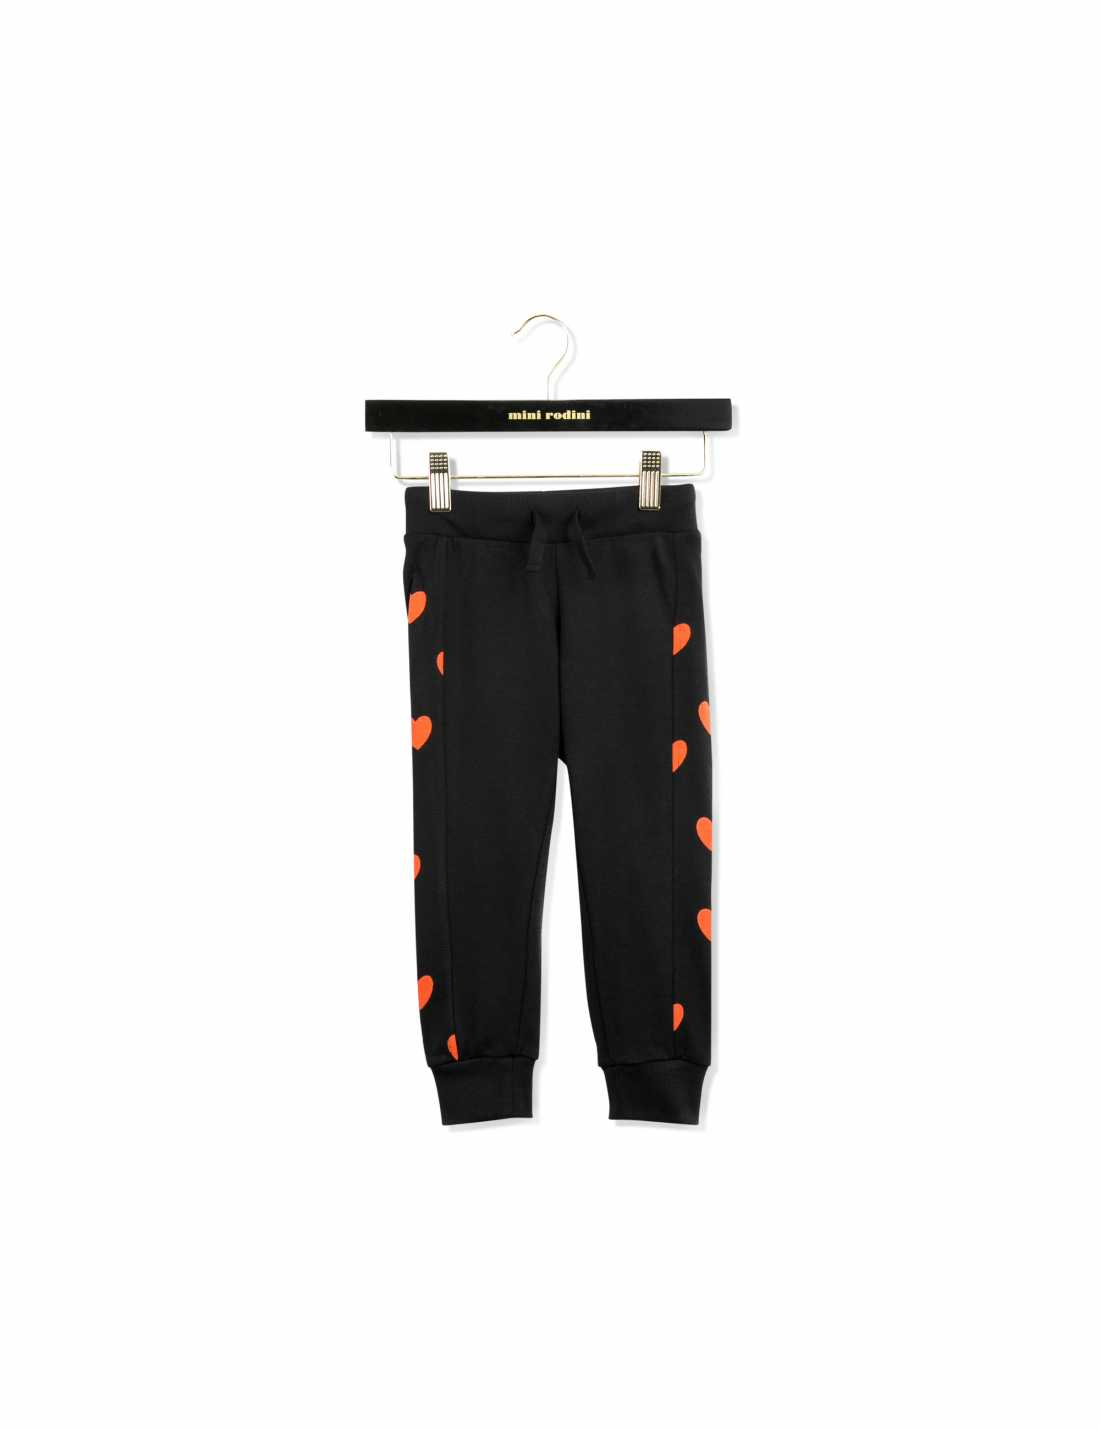 Black sweatpants with printed red hearts along the sides and soft cuffs at leg endings and waist